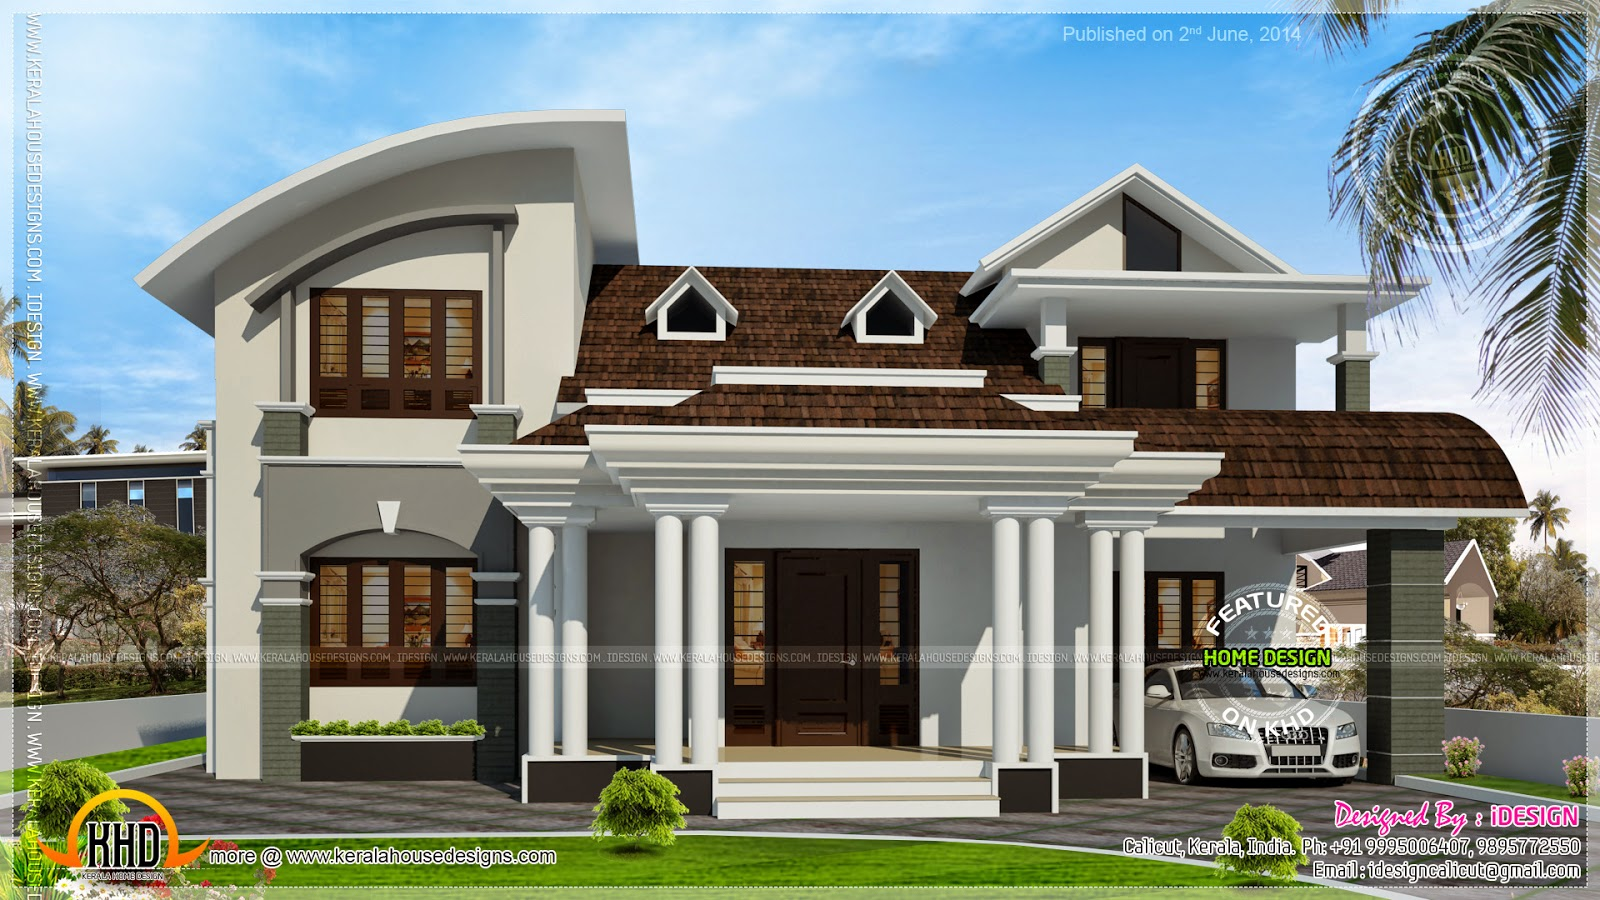 Impressive House Plans with Dormer Windows 1600 x 900 · 353 kB · jpeg